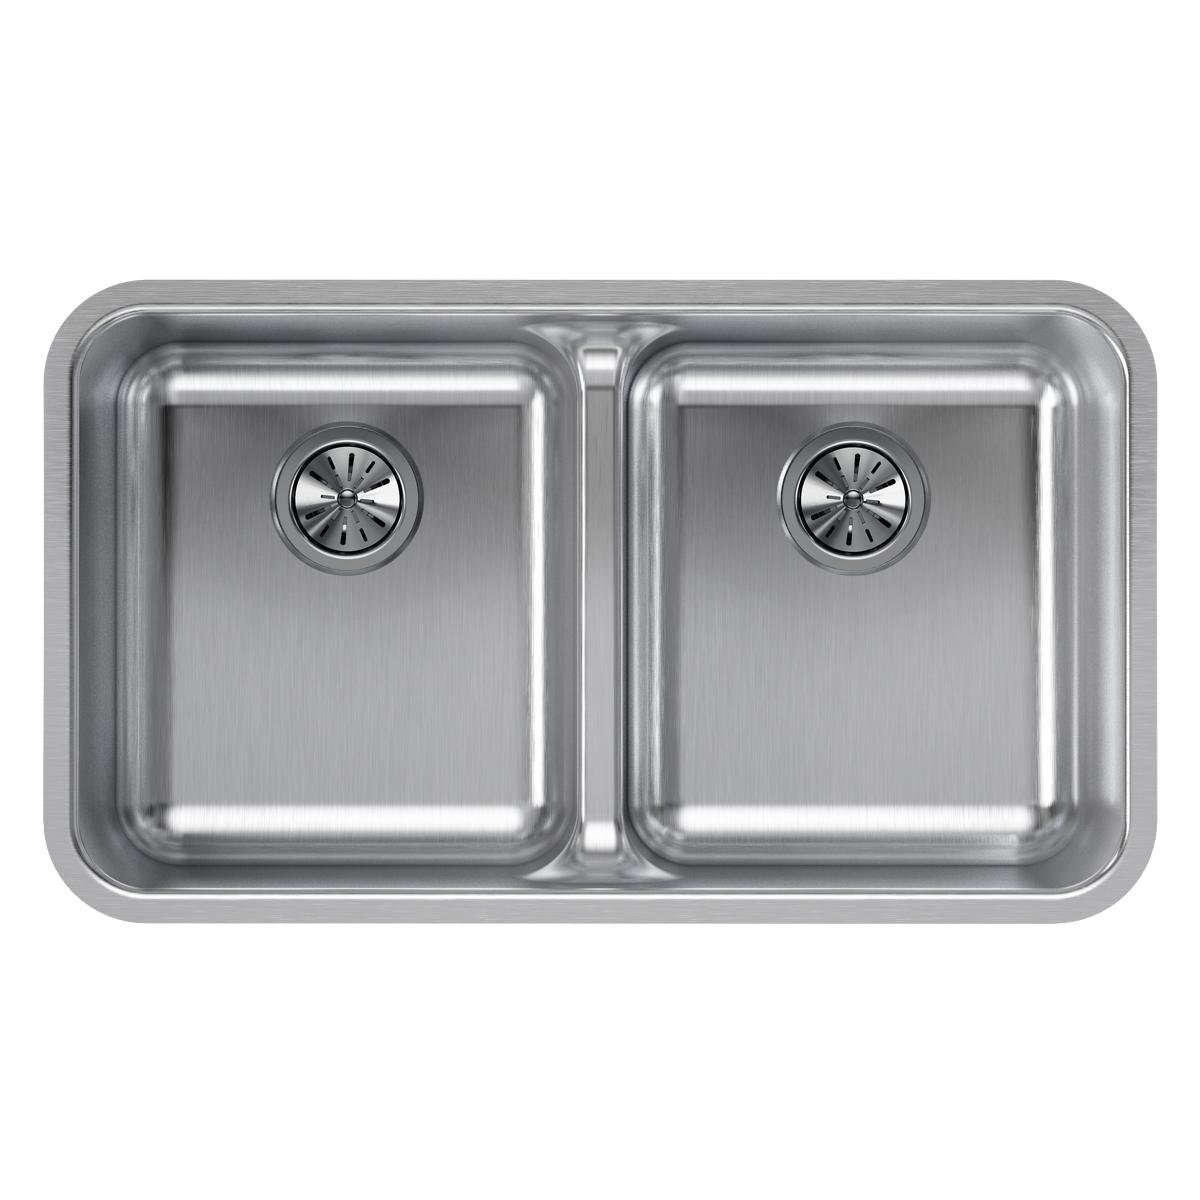 Elkay Lustertone ELUHAQD3218 Equal Double Bowl Undermount Stainless Steel Sink with Aqua Divide